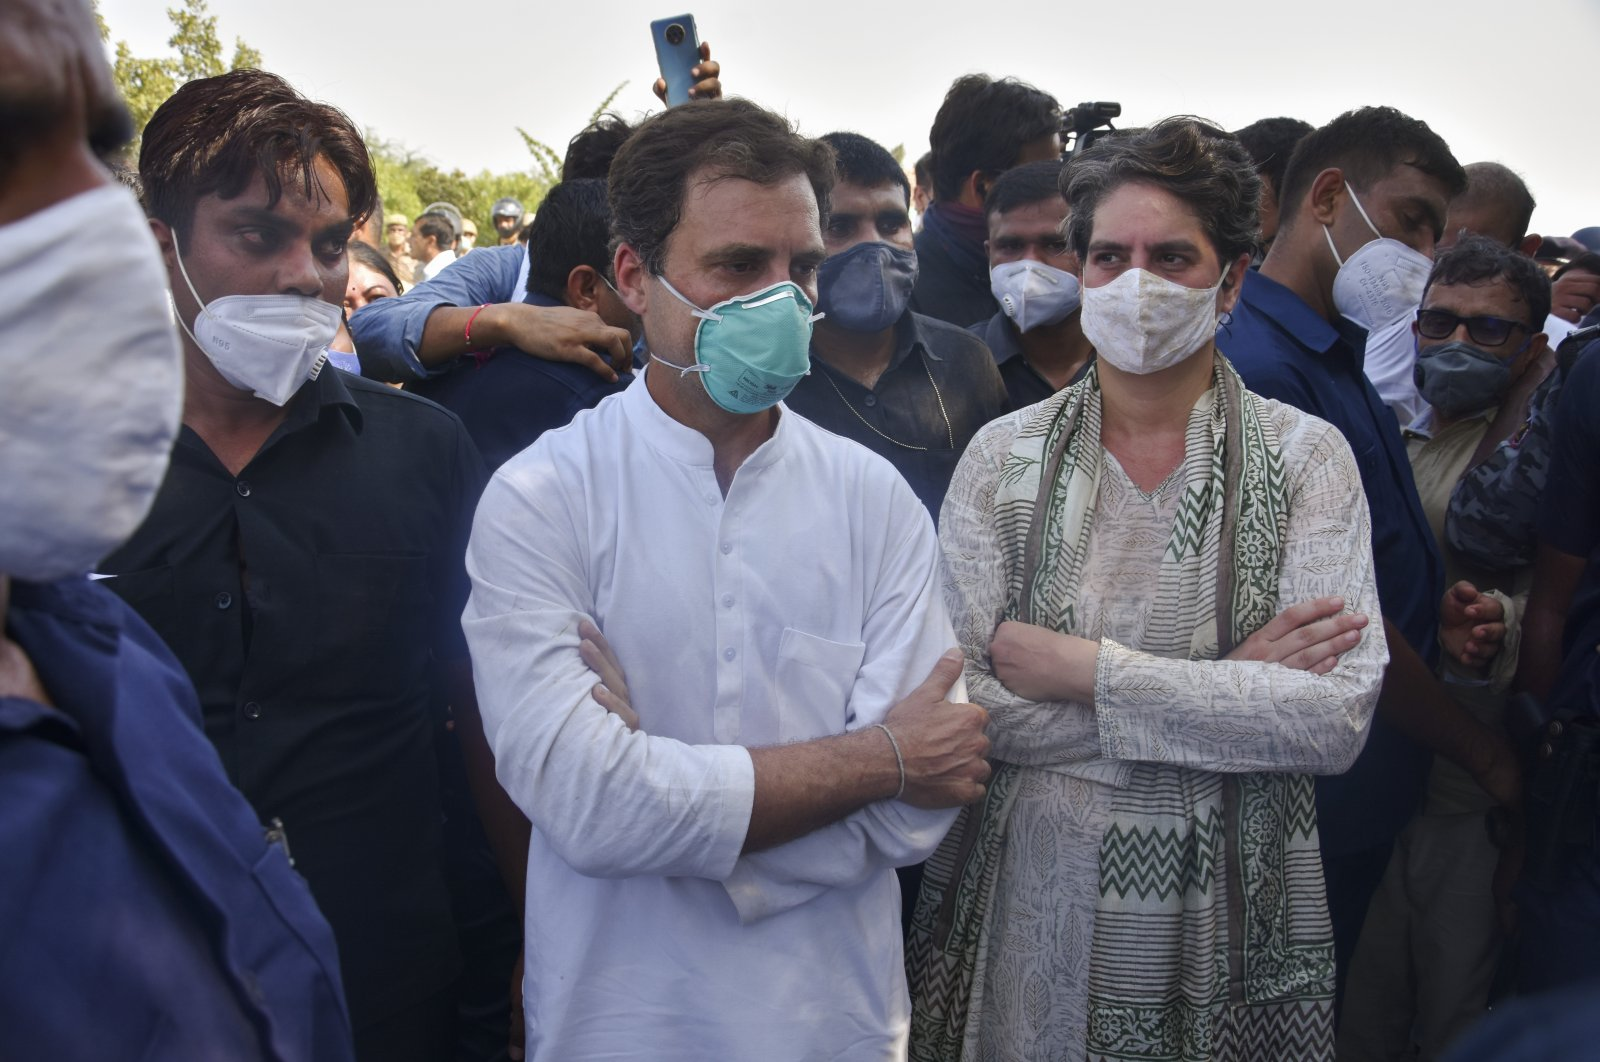 India's opposition Congress party leaders, Rahul Gandhi (C) and his sister Priyanka Gandhi (R) stand after they were stopped by police on a highway in Gautam Buddha Nagar, Uttar Pradesh state, India, Oct. 1, 2020. (AP Photo)